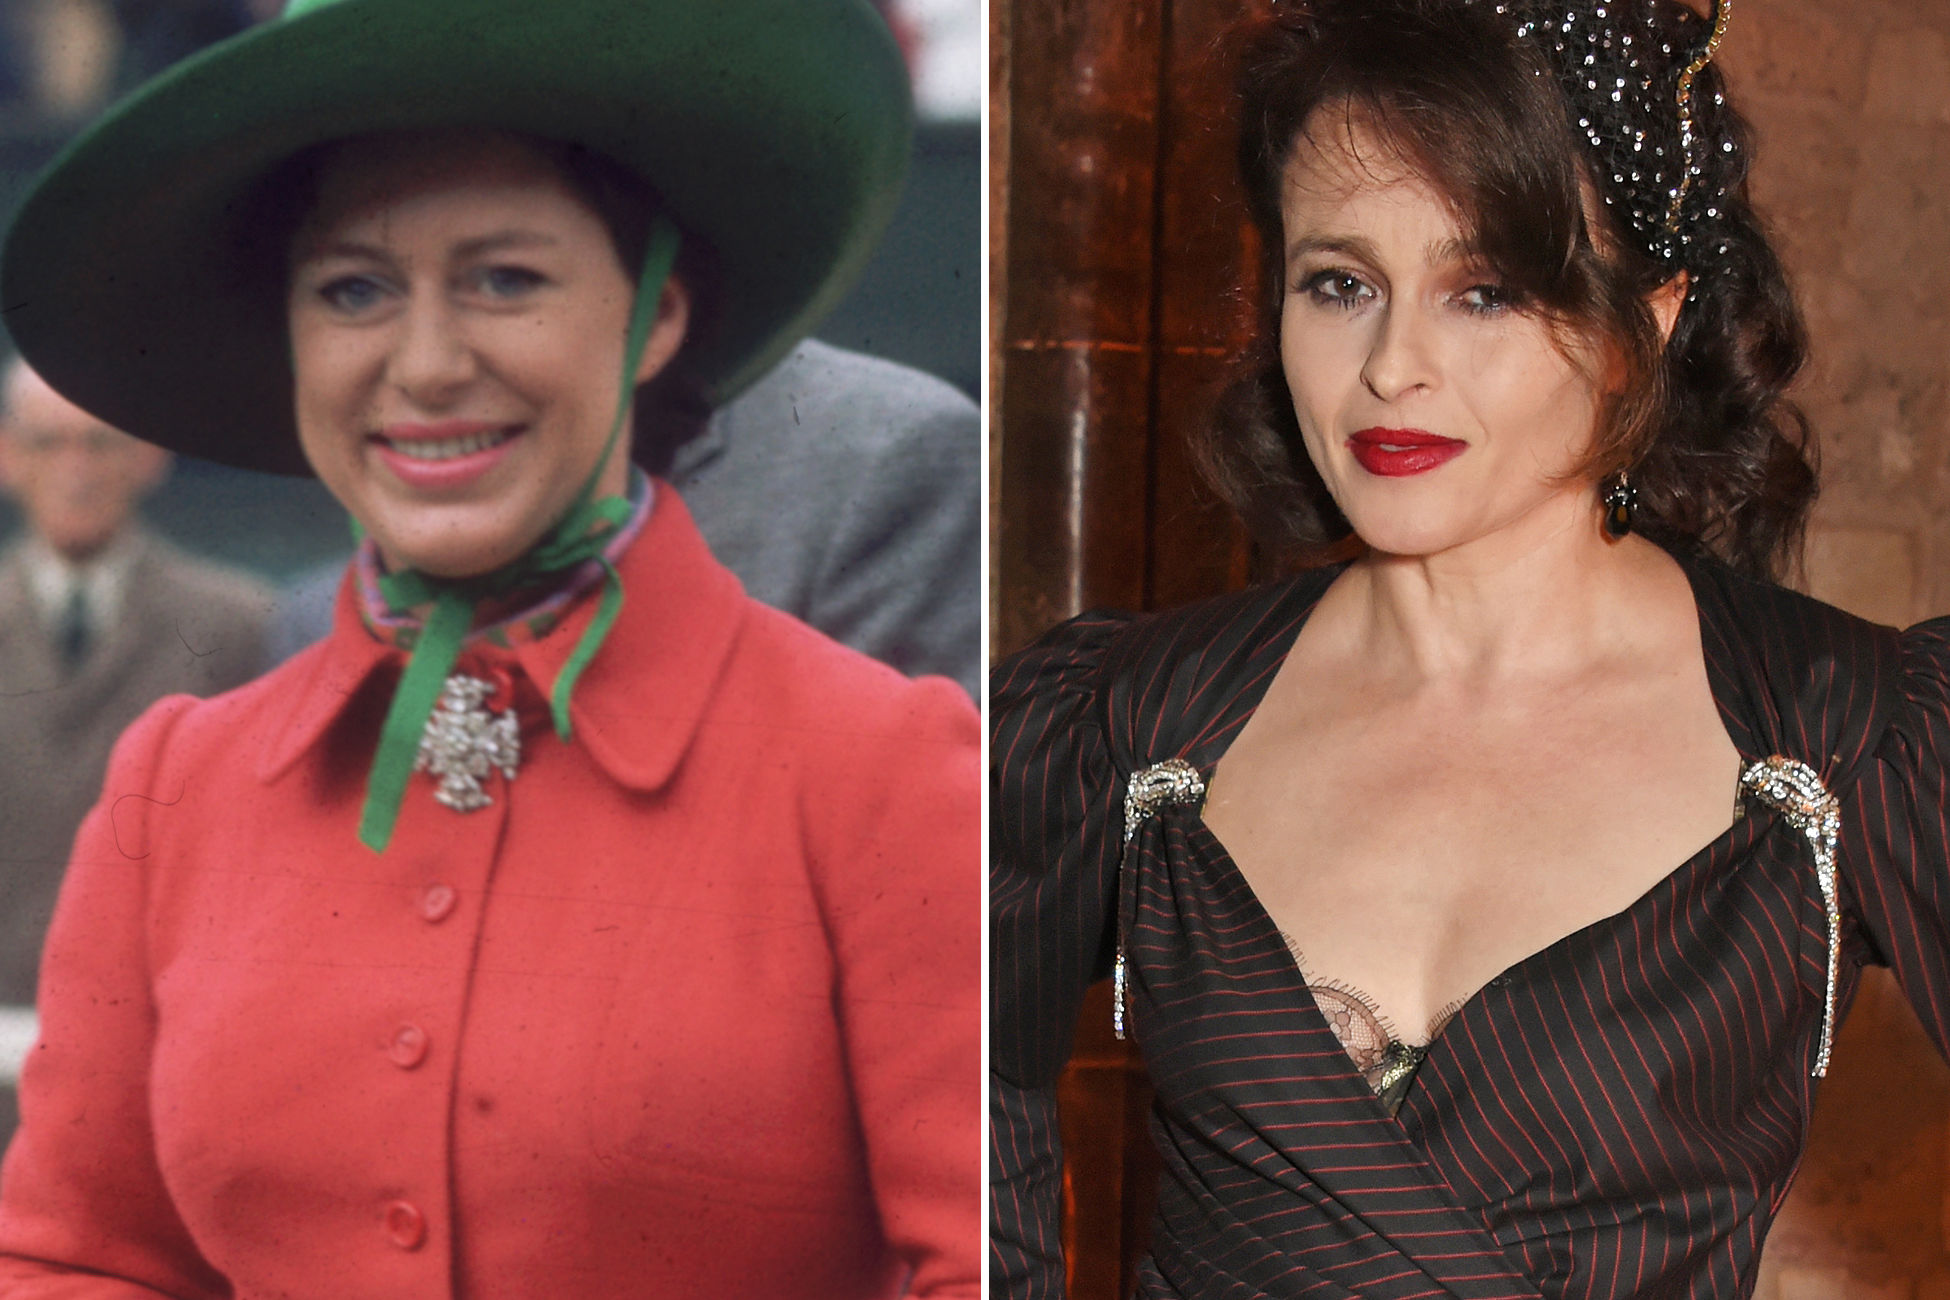 Helena Bonham Carter Is Confirmed as Princess Margaret inThe Crown and We Can't Wait